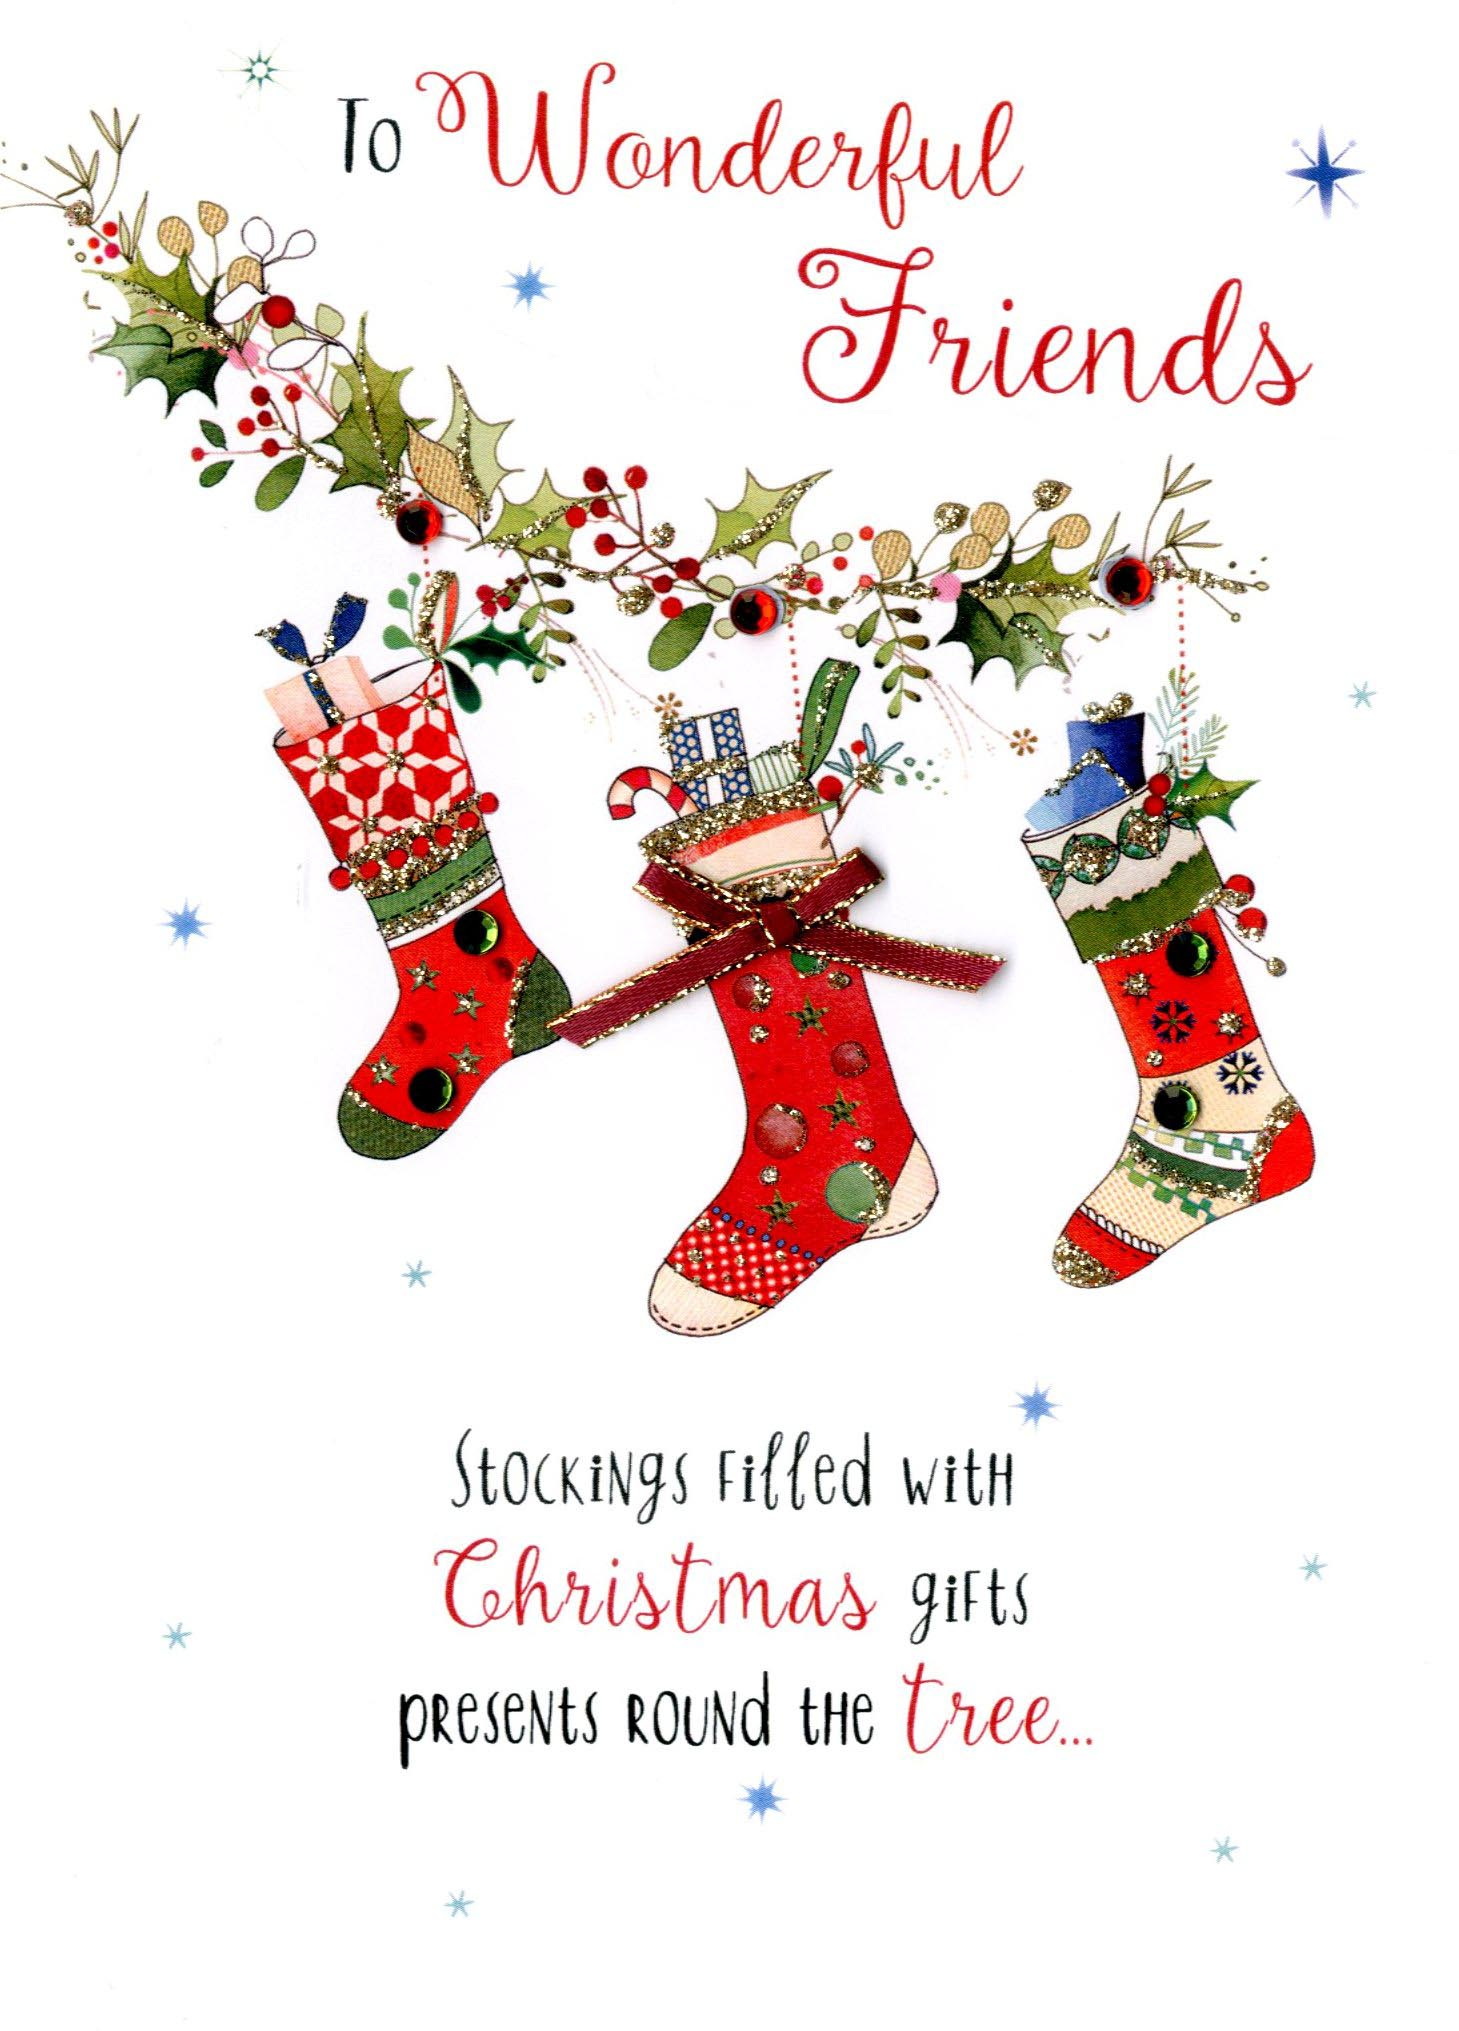 Christmas Greeting Cards.Wonderful Friends Embellished Christmas Card